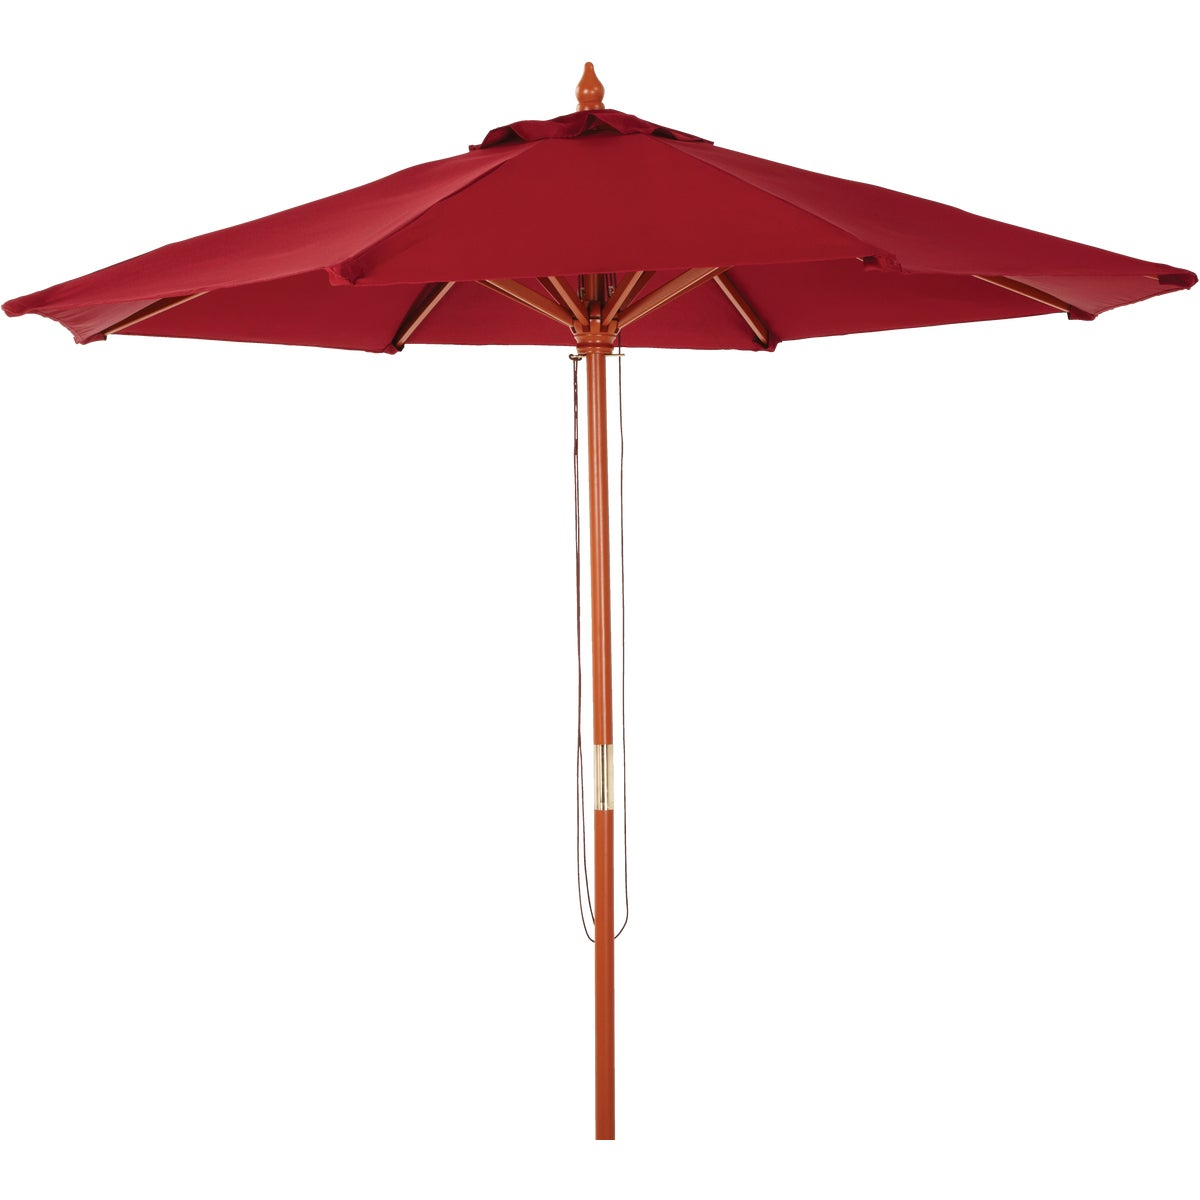 7.5' MKT BURGND UMBRELLA - TJWU-003A-230-BRG by Do it Best